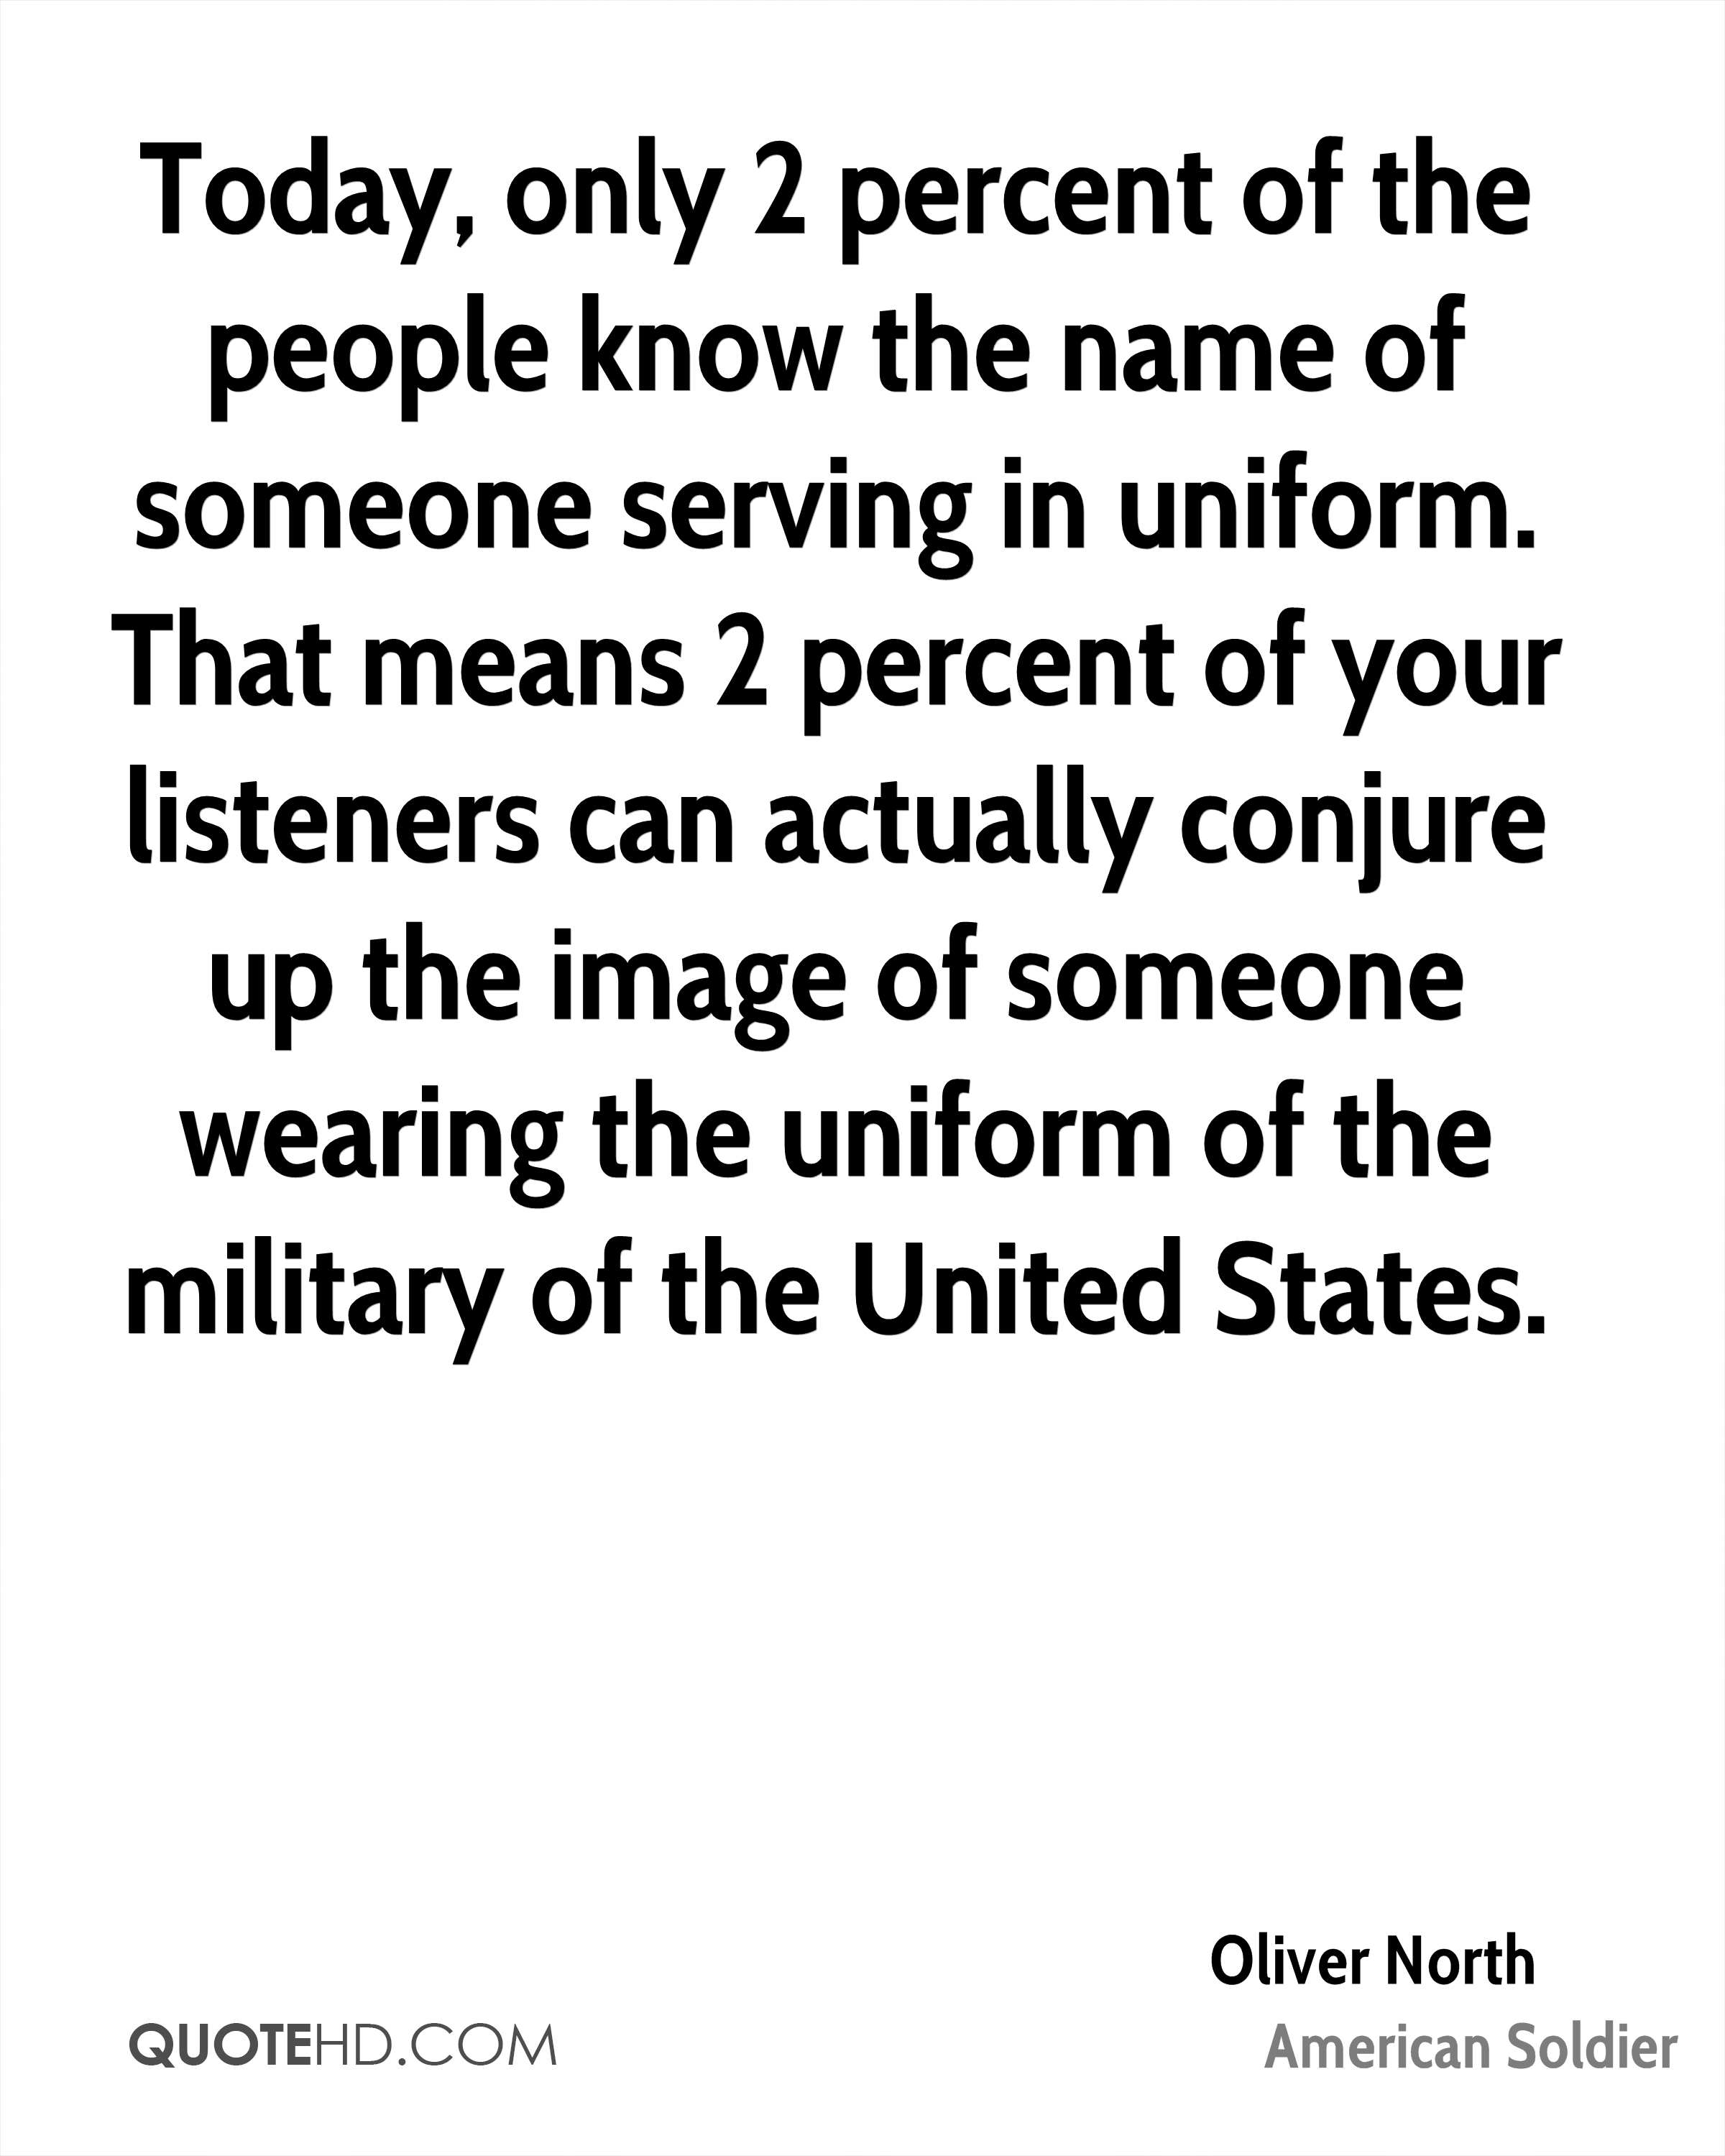 Today, only 2 percent of the people know the name of someone serving in uniform. That means 2 percent of your listeners can actually conjure up the image of someone wearing the uniform of the military of the United States.